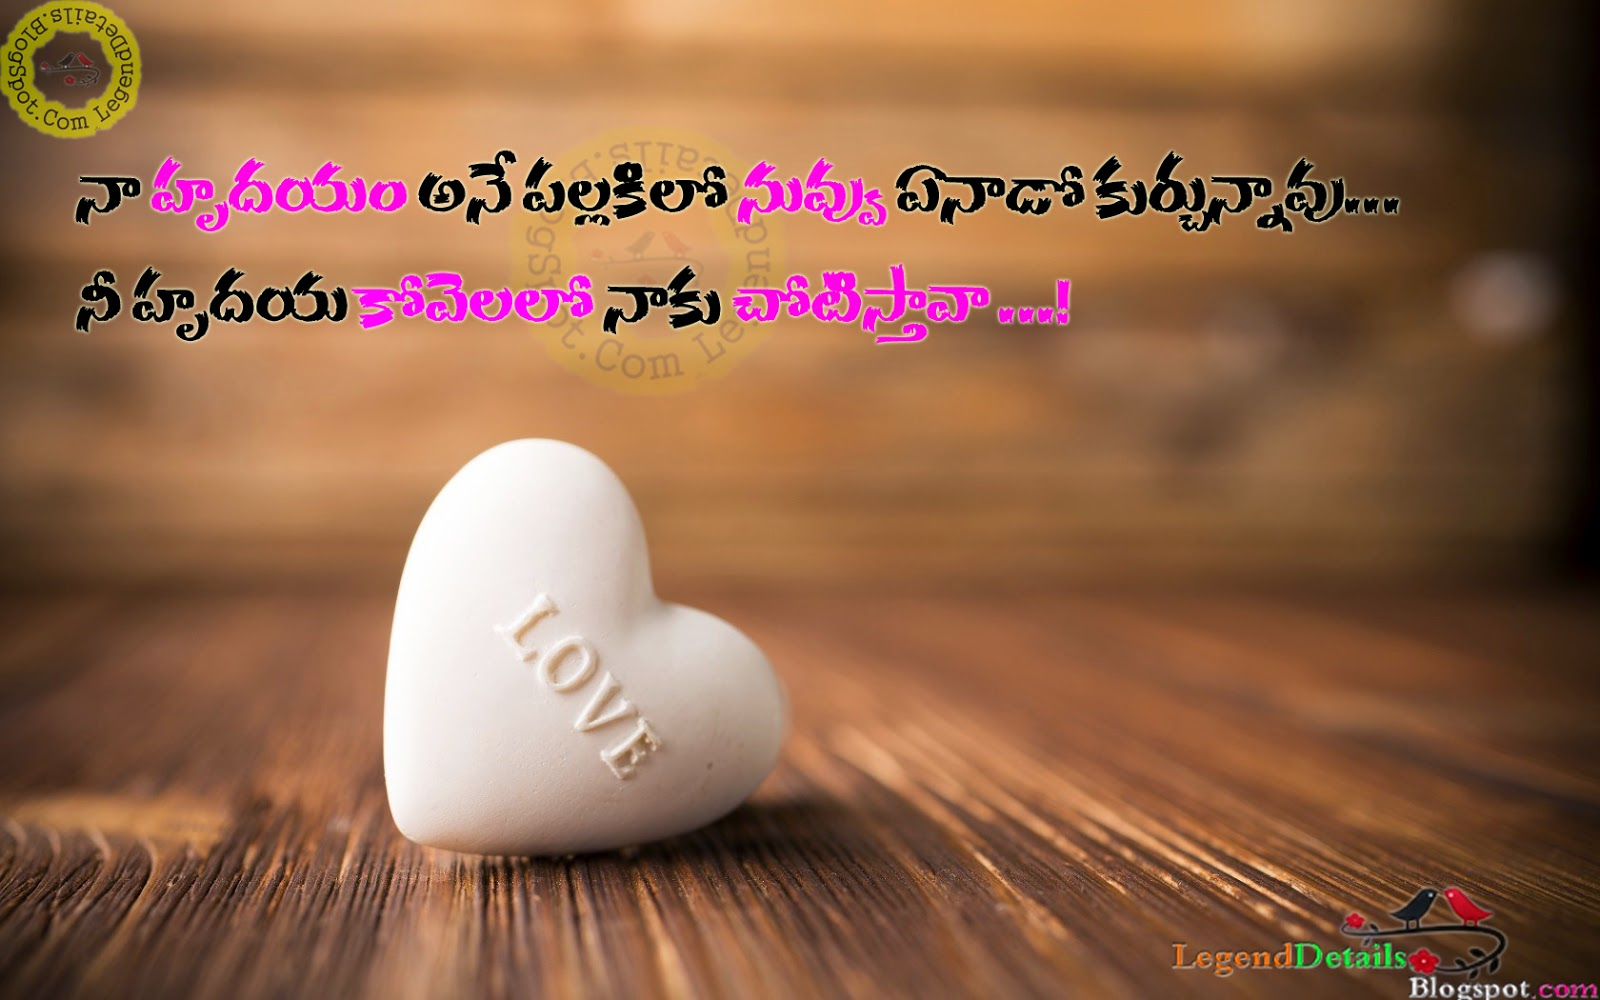 Telugu Love Quotes Gorgeous Telugu Love Sms With Hd Images  Heart Touching Telugu Love Sms